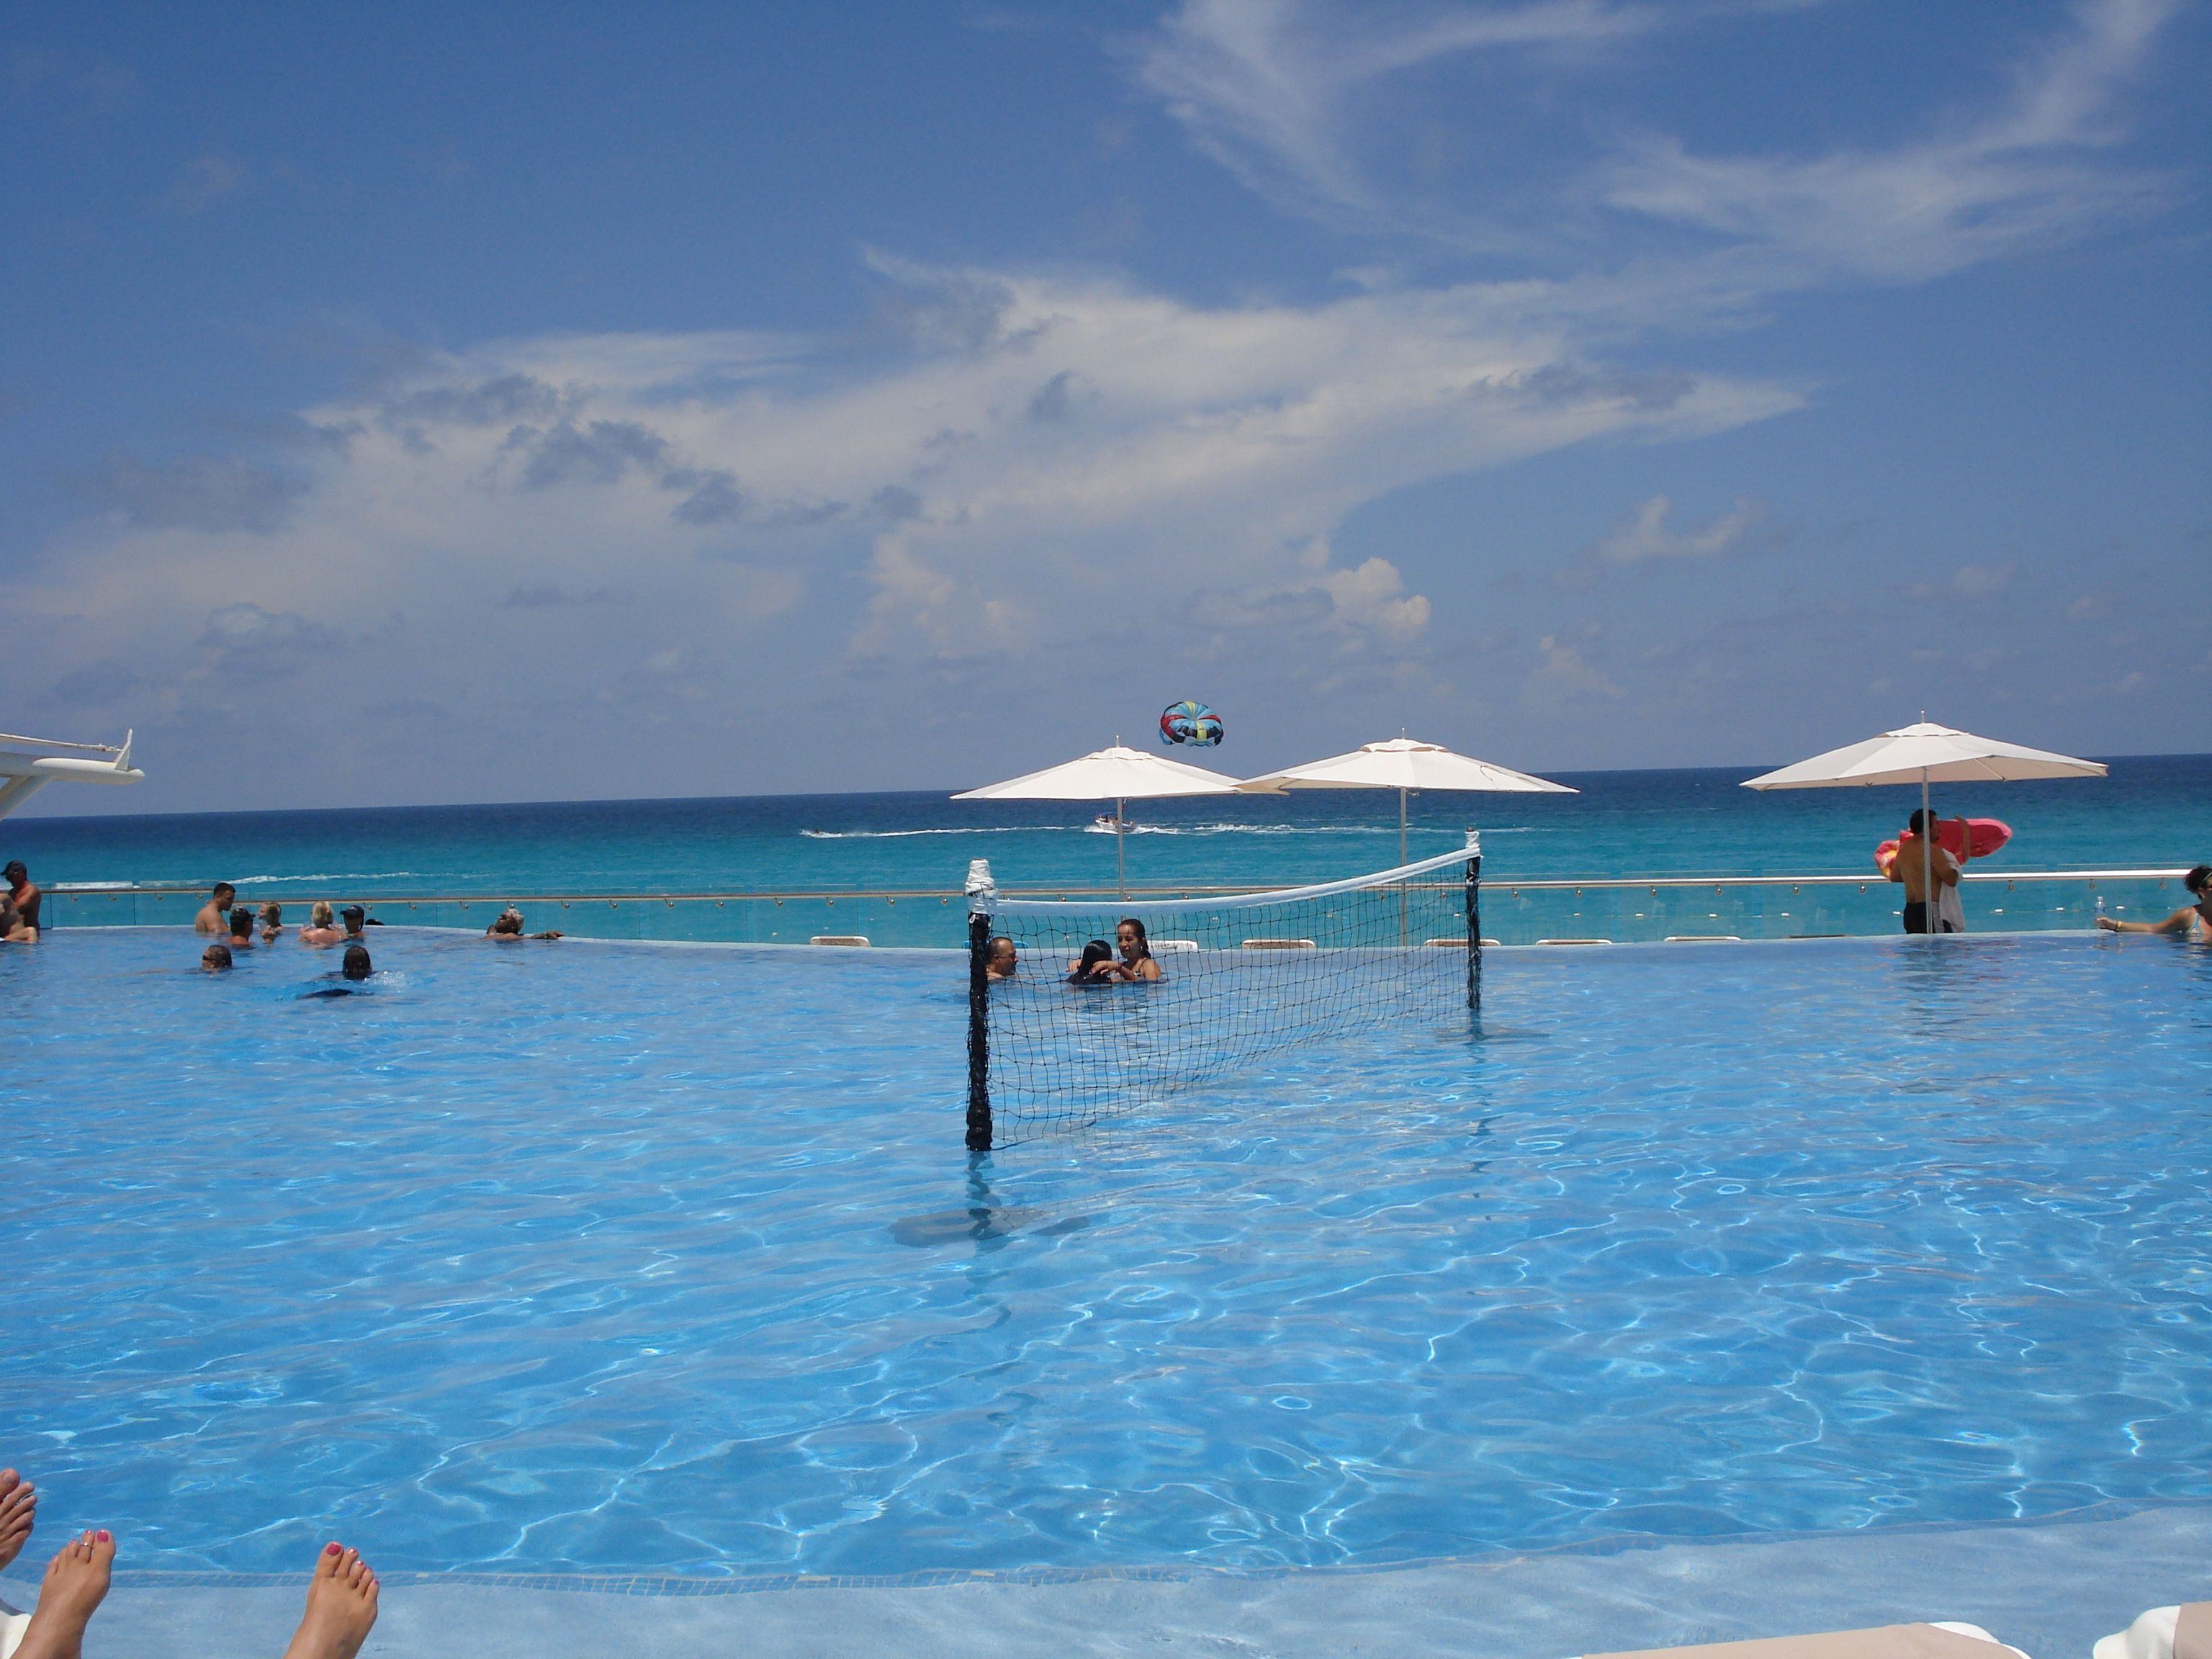 view from the pool Cancun  Vacation spots Beach fun